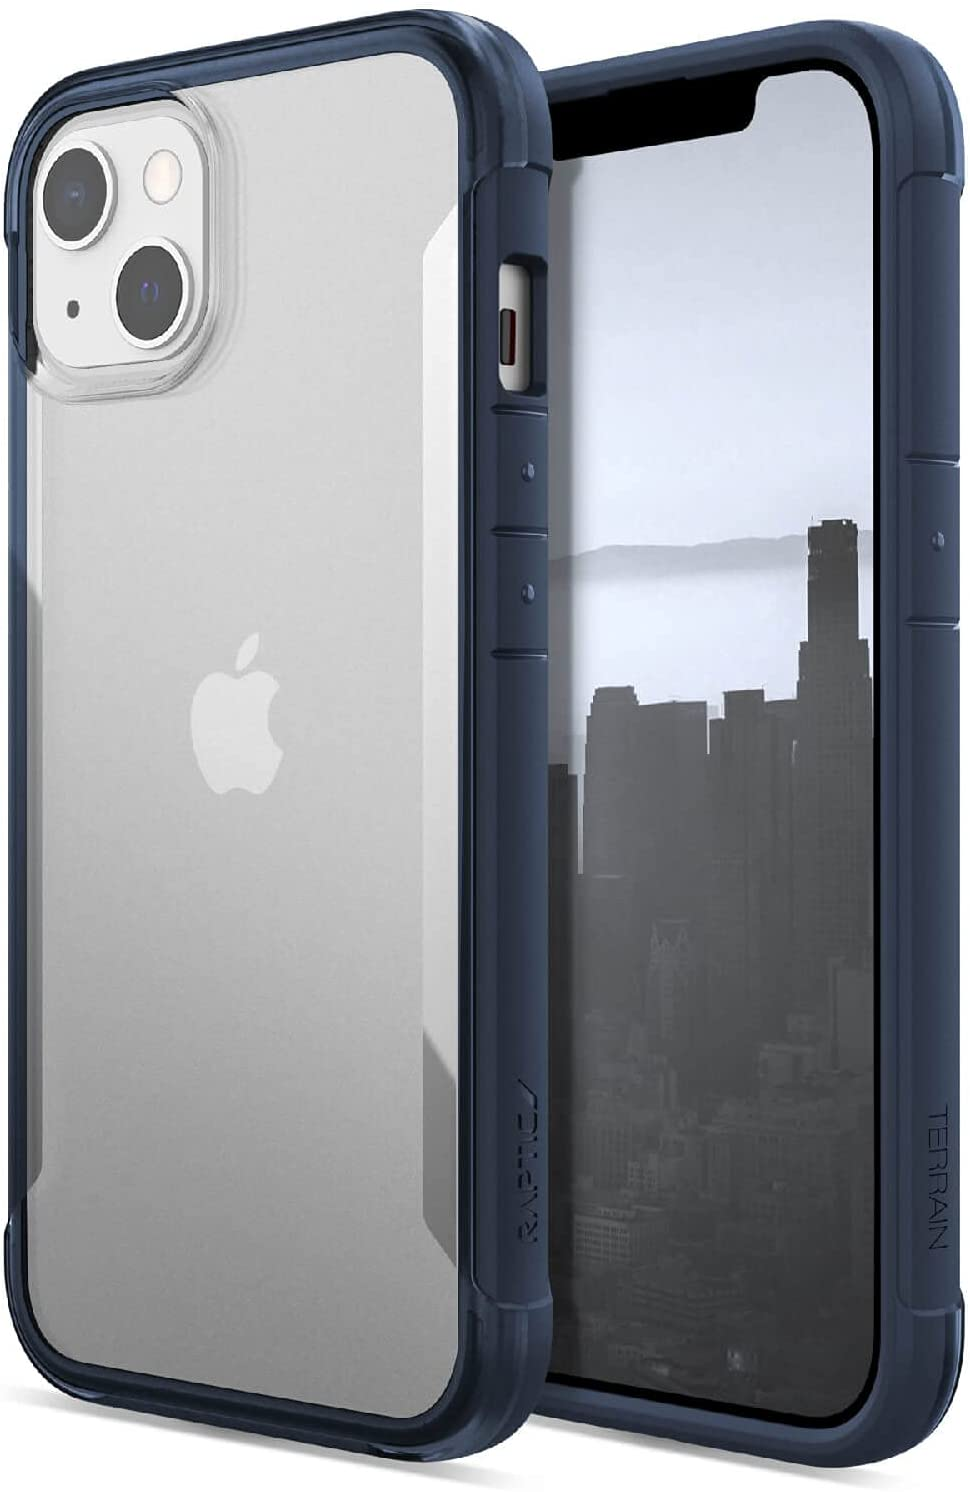 Raptic Terrain Case Compatible with iPhone 13 Case, Made in USA, Clear Polycarbonate Back, 10ft Drop Protection, Fits iPhone 13, Blue/Clear